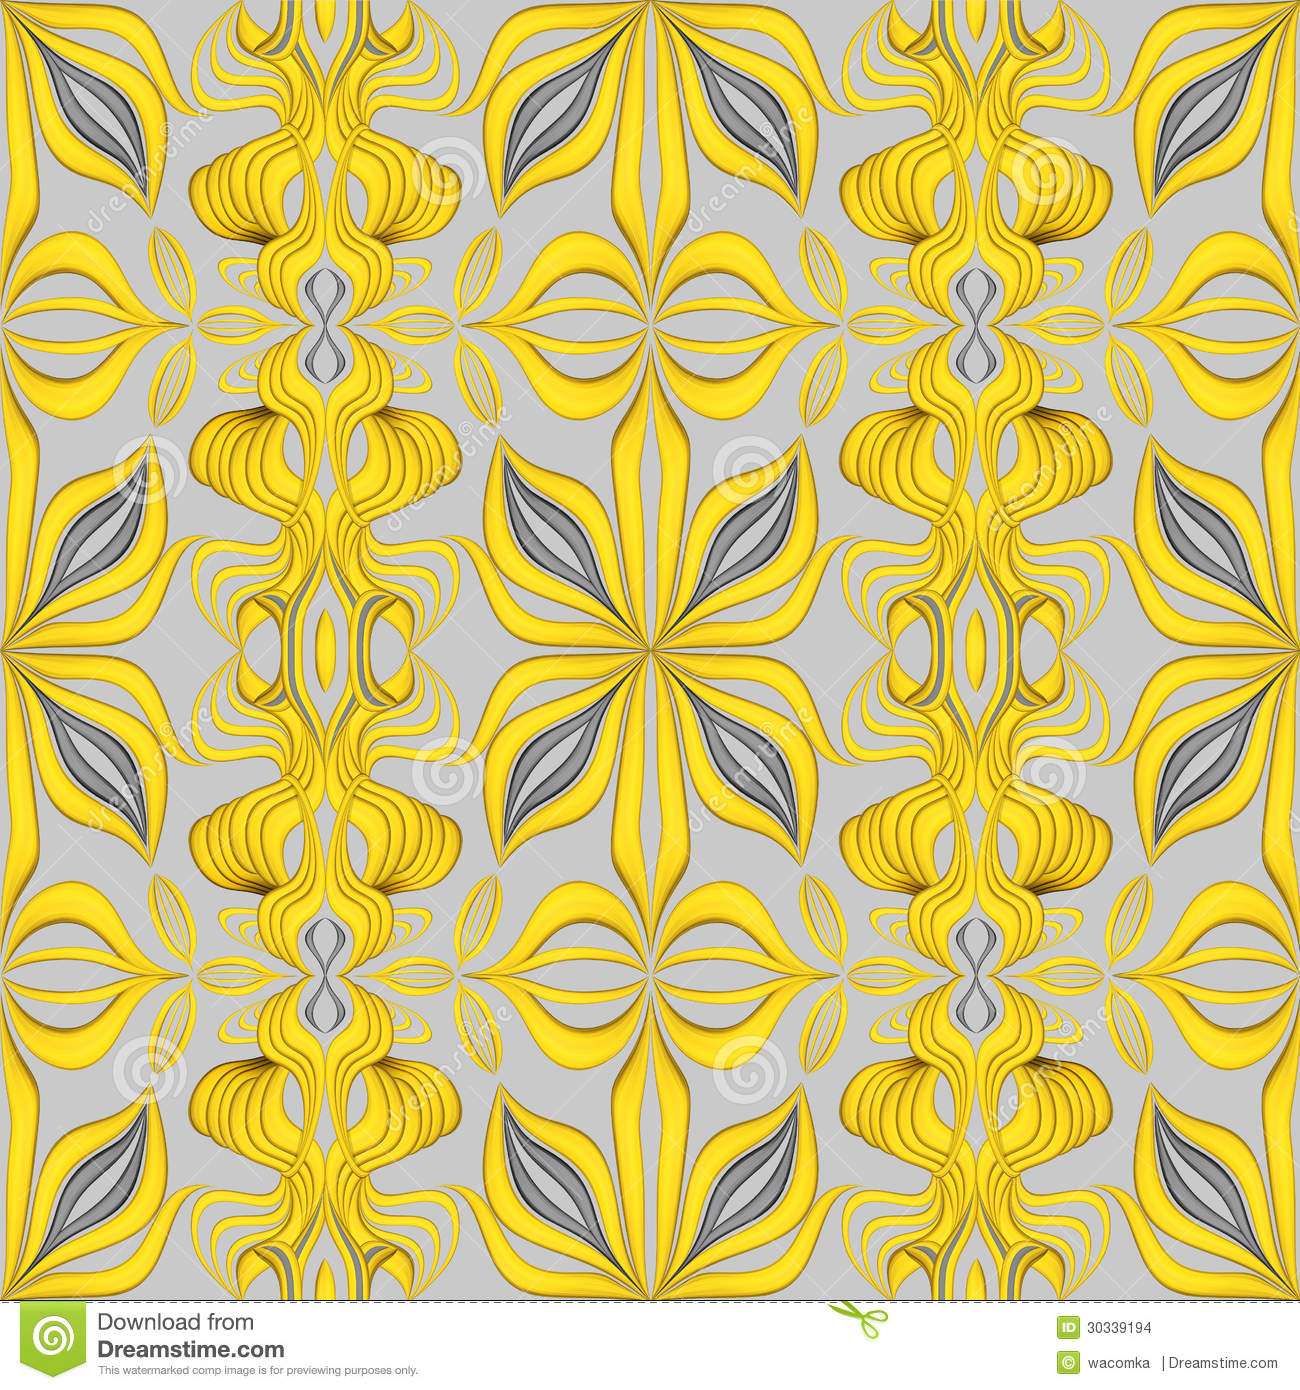 Abstract Yellow Seamless Ornate Leaves Pattern Background